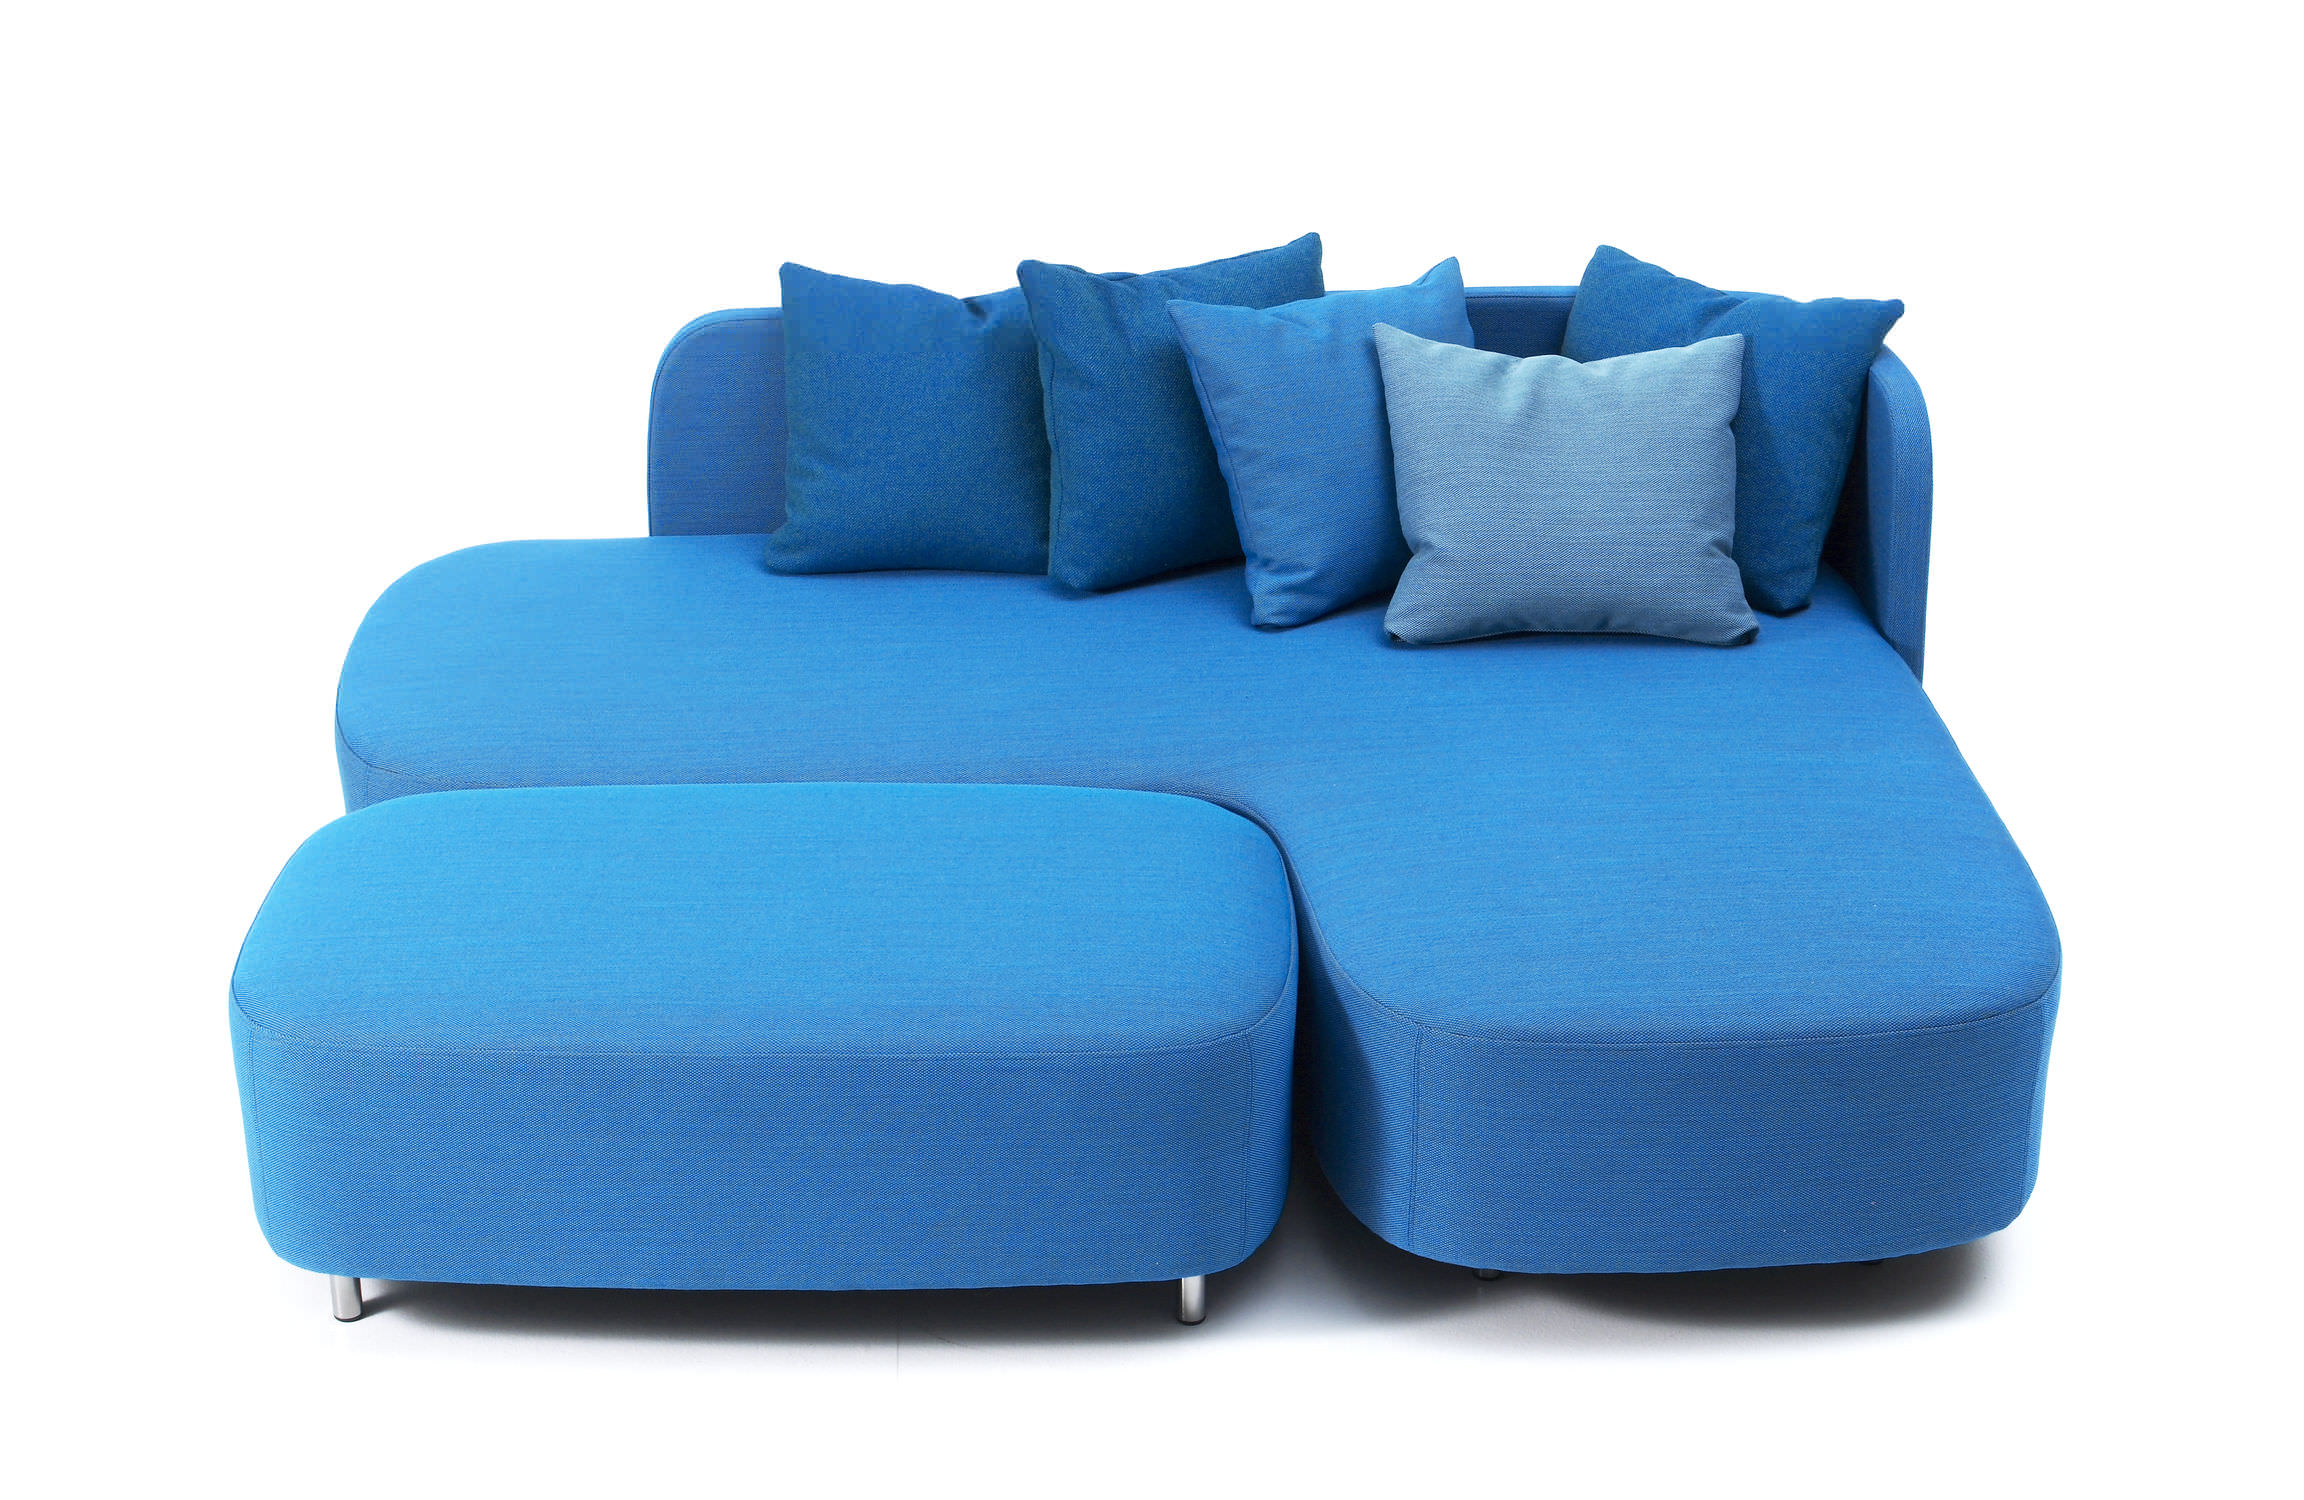 Small Corner Sofas U2013 Your Dream Pieces To Save Space With Elegance And  Comfort